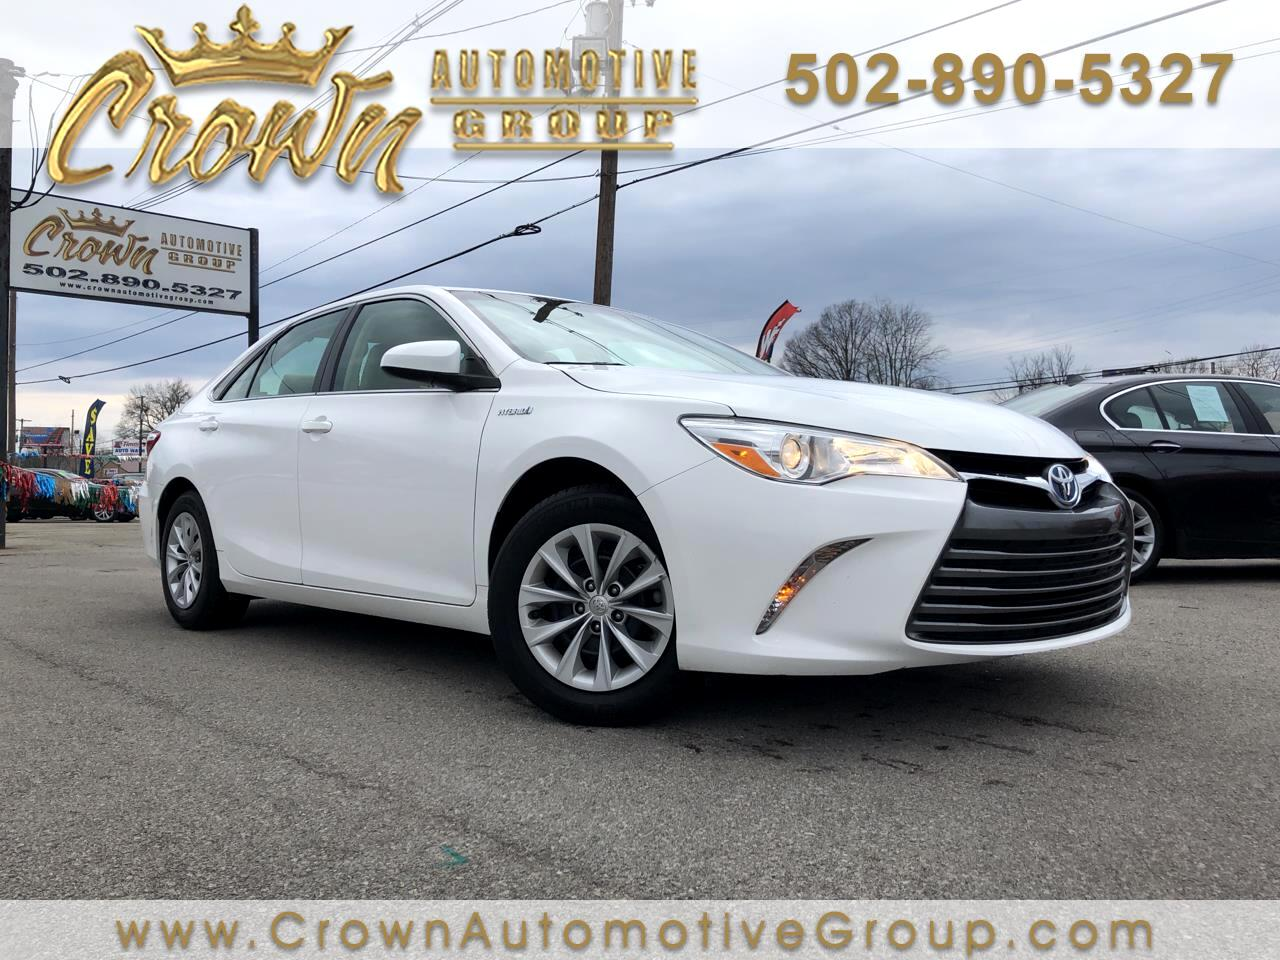 2015 Toyota Camry Hybrid 4dr Sdn LE (Natl)